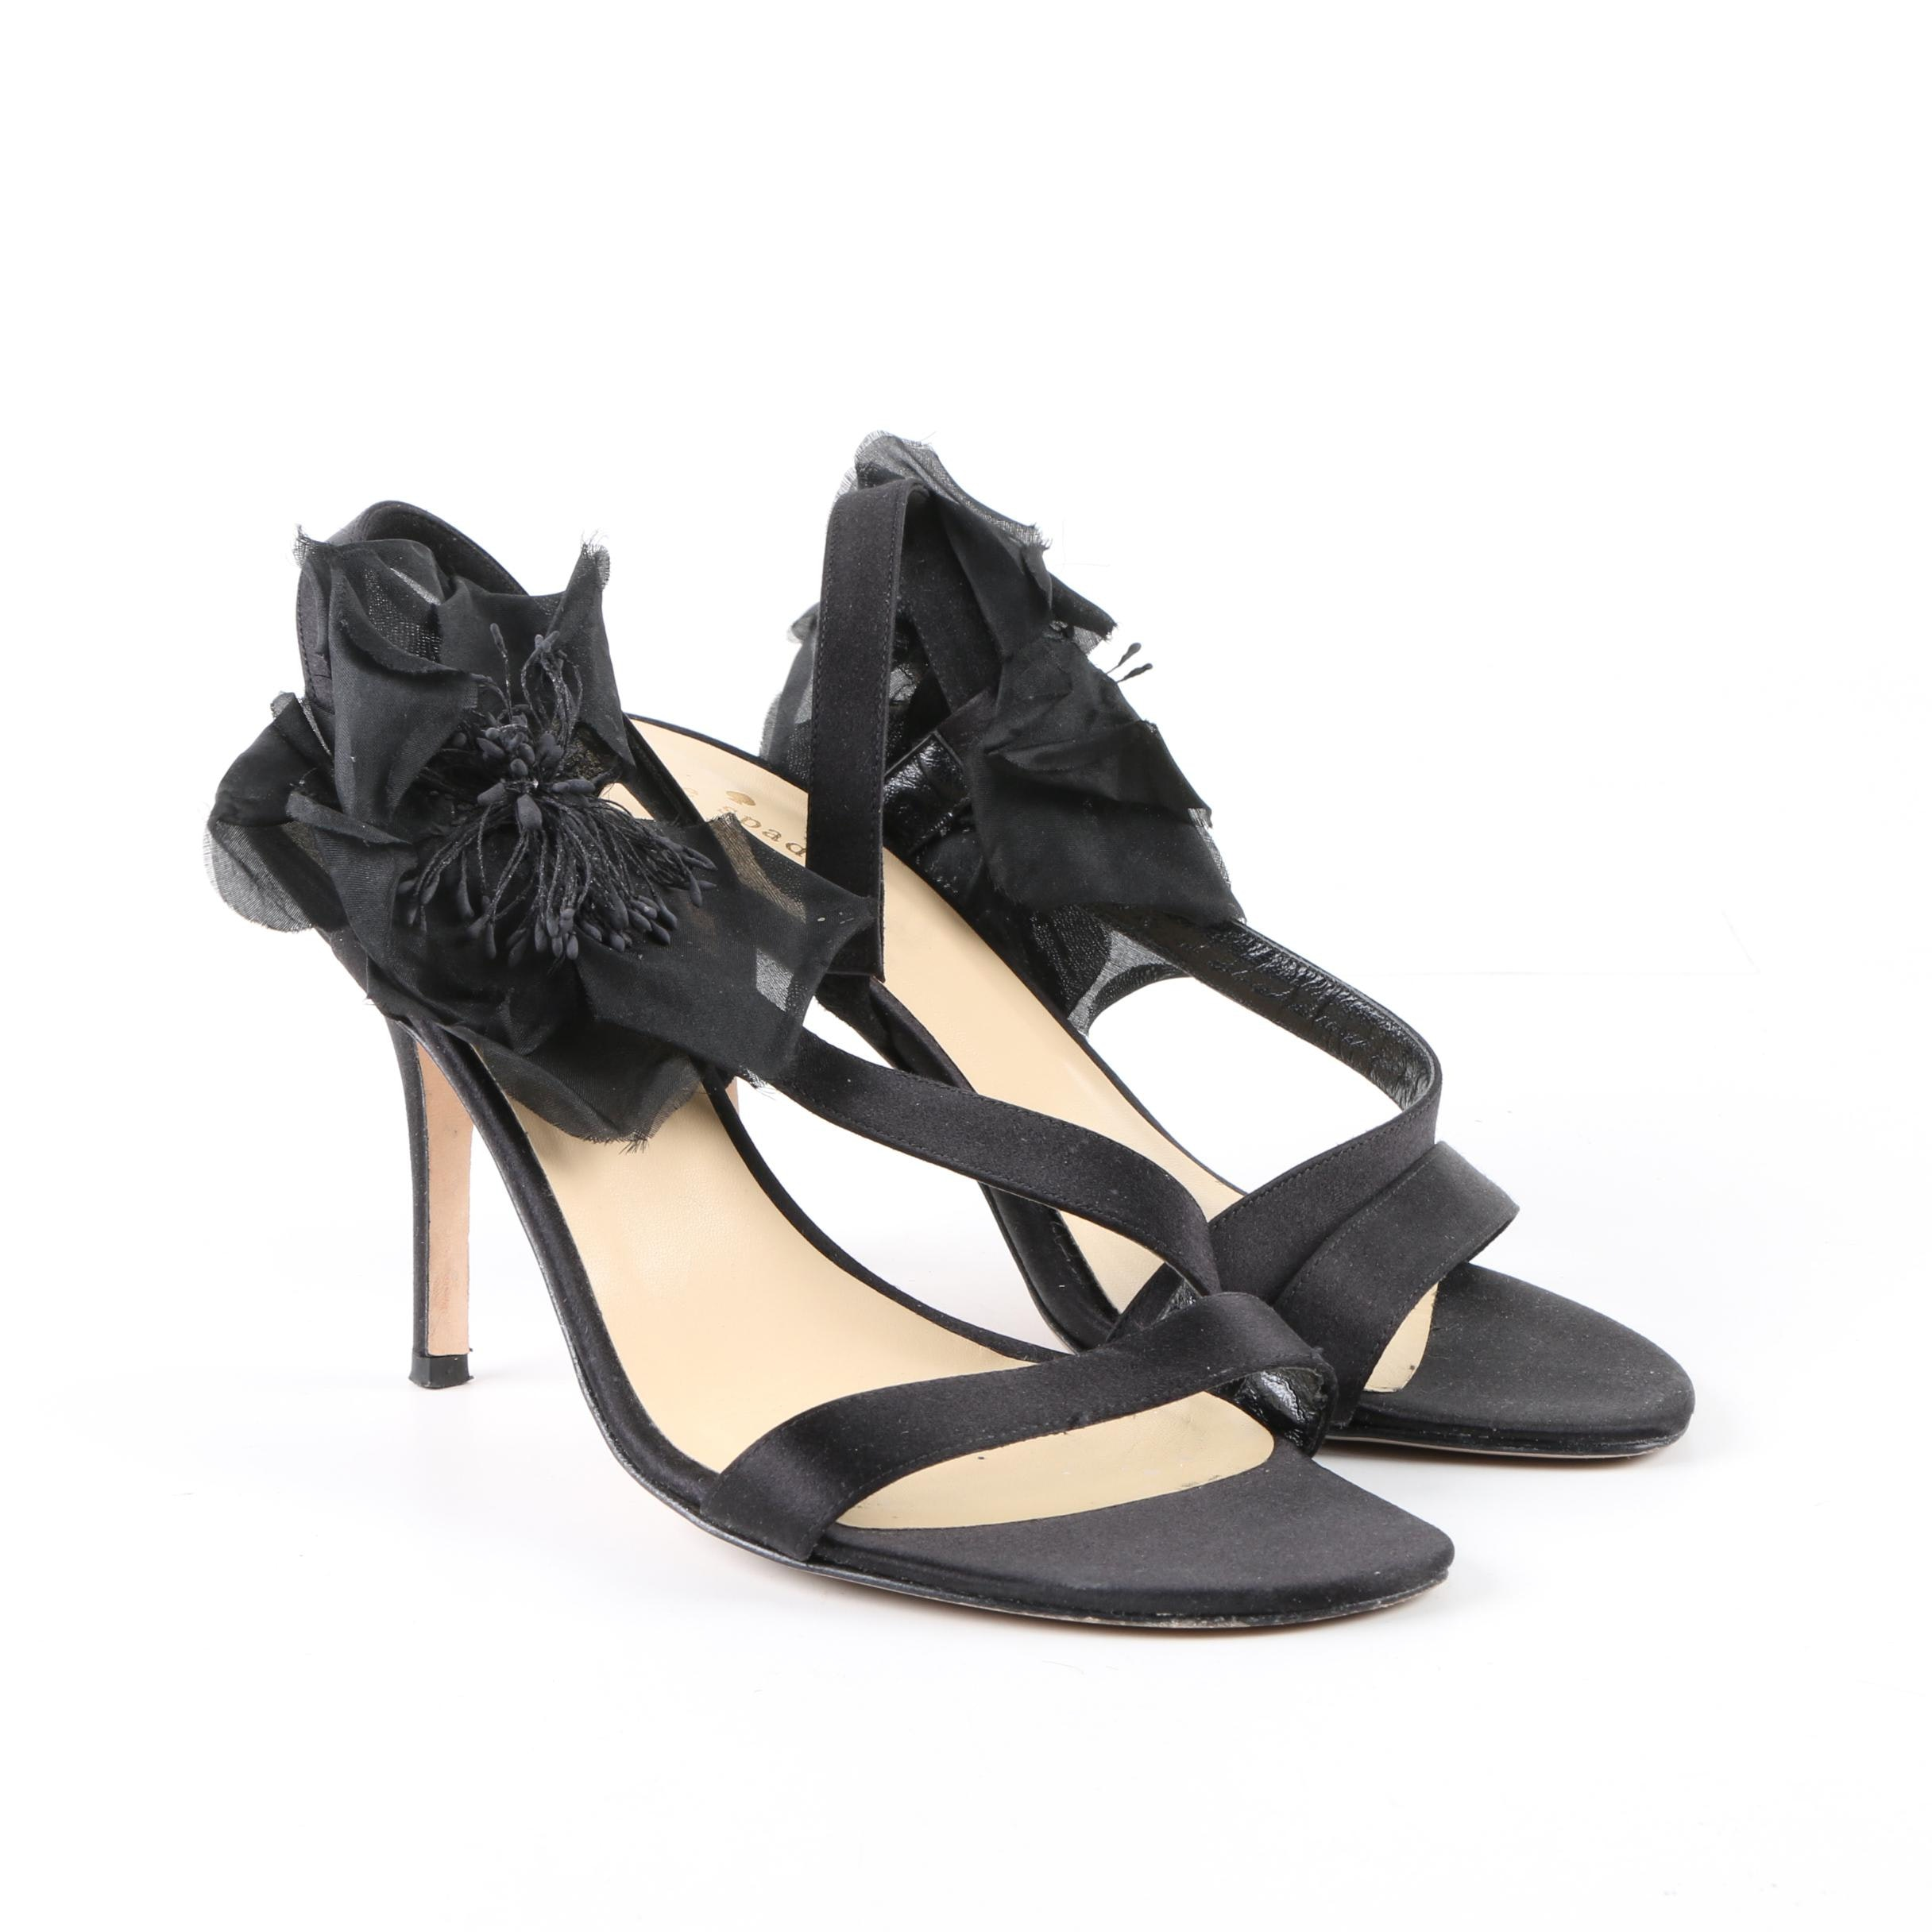 Kate Spade New York Black Satin Heeled Dress Sandals